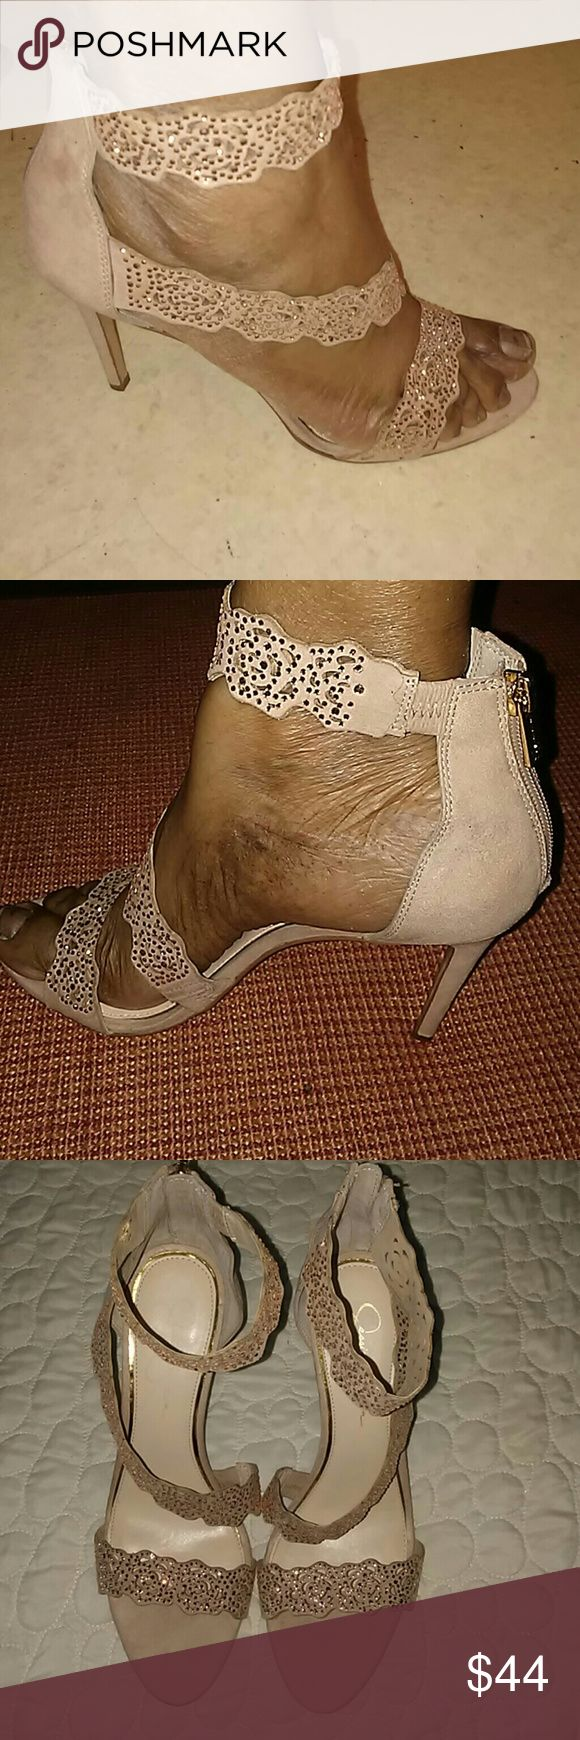 Jessica Simpson Heels Beautiful nude color heels with rhinestone embellishments on the ankle strap and straps. Jessica Simpson Shoes Heels